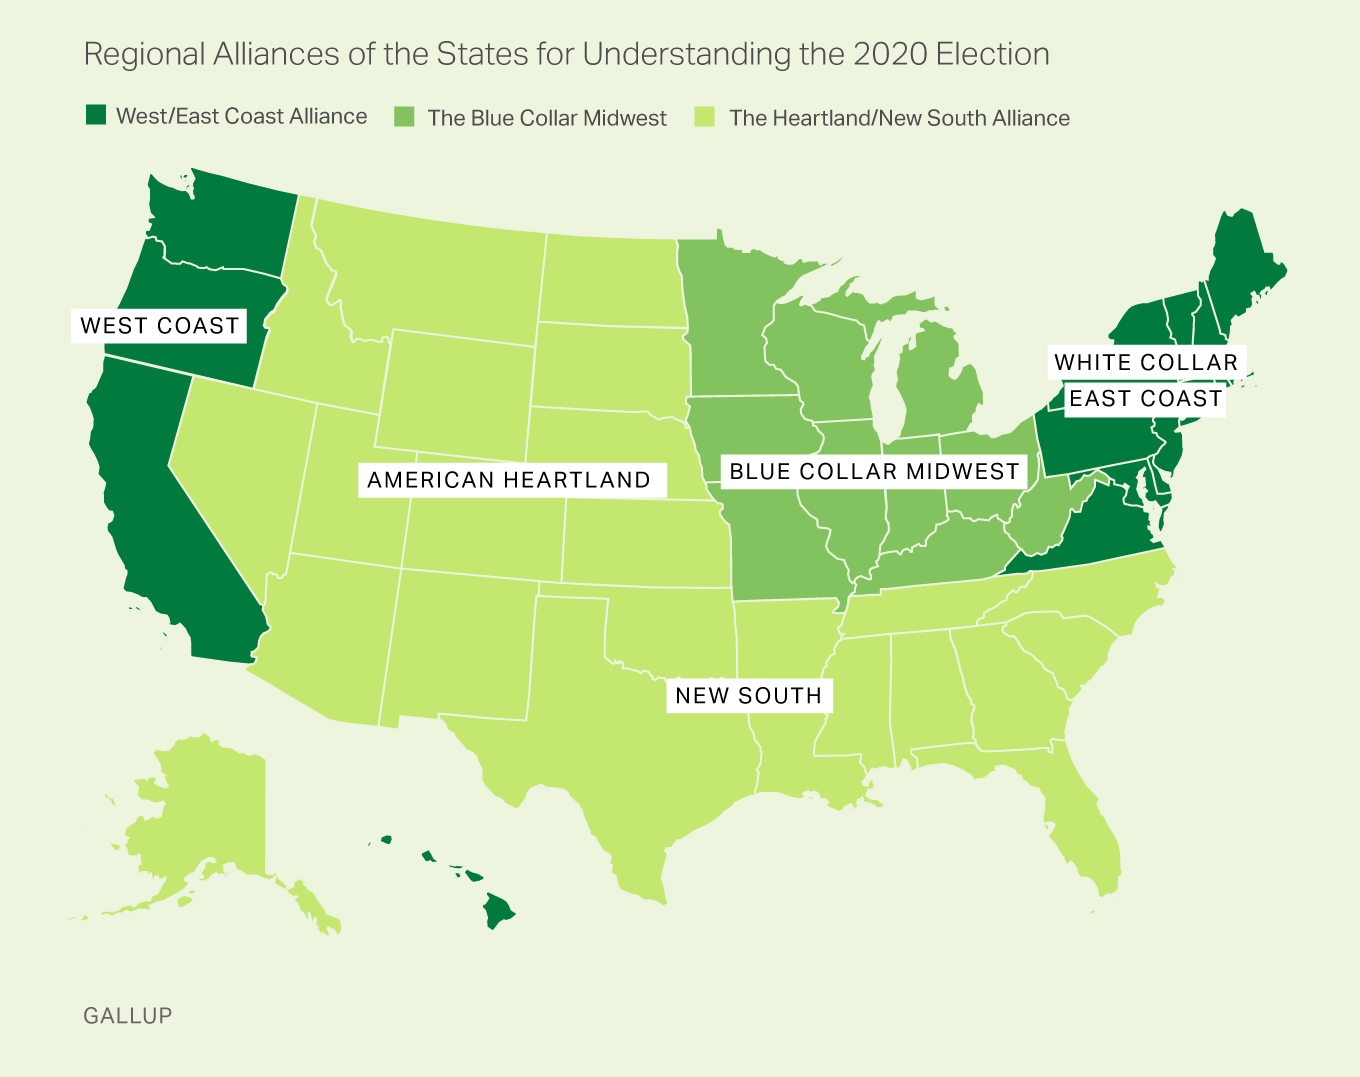 Regional Alliances of the States for Understanding the 2020 Election